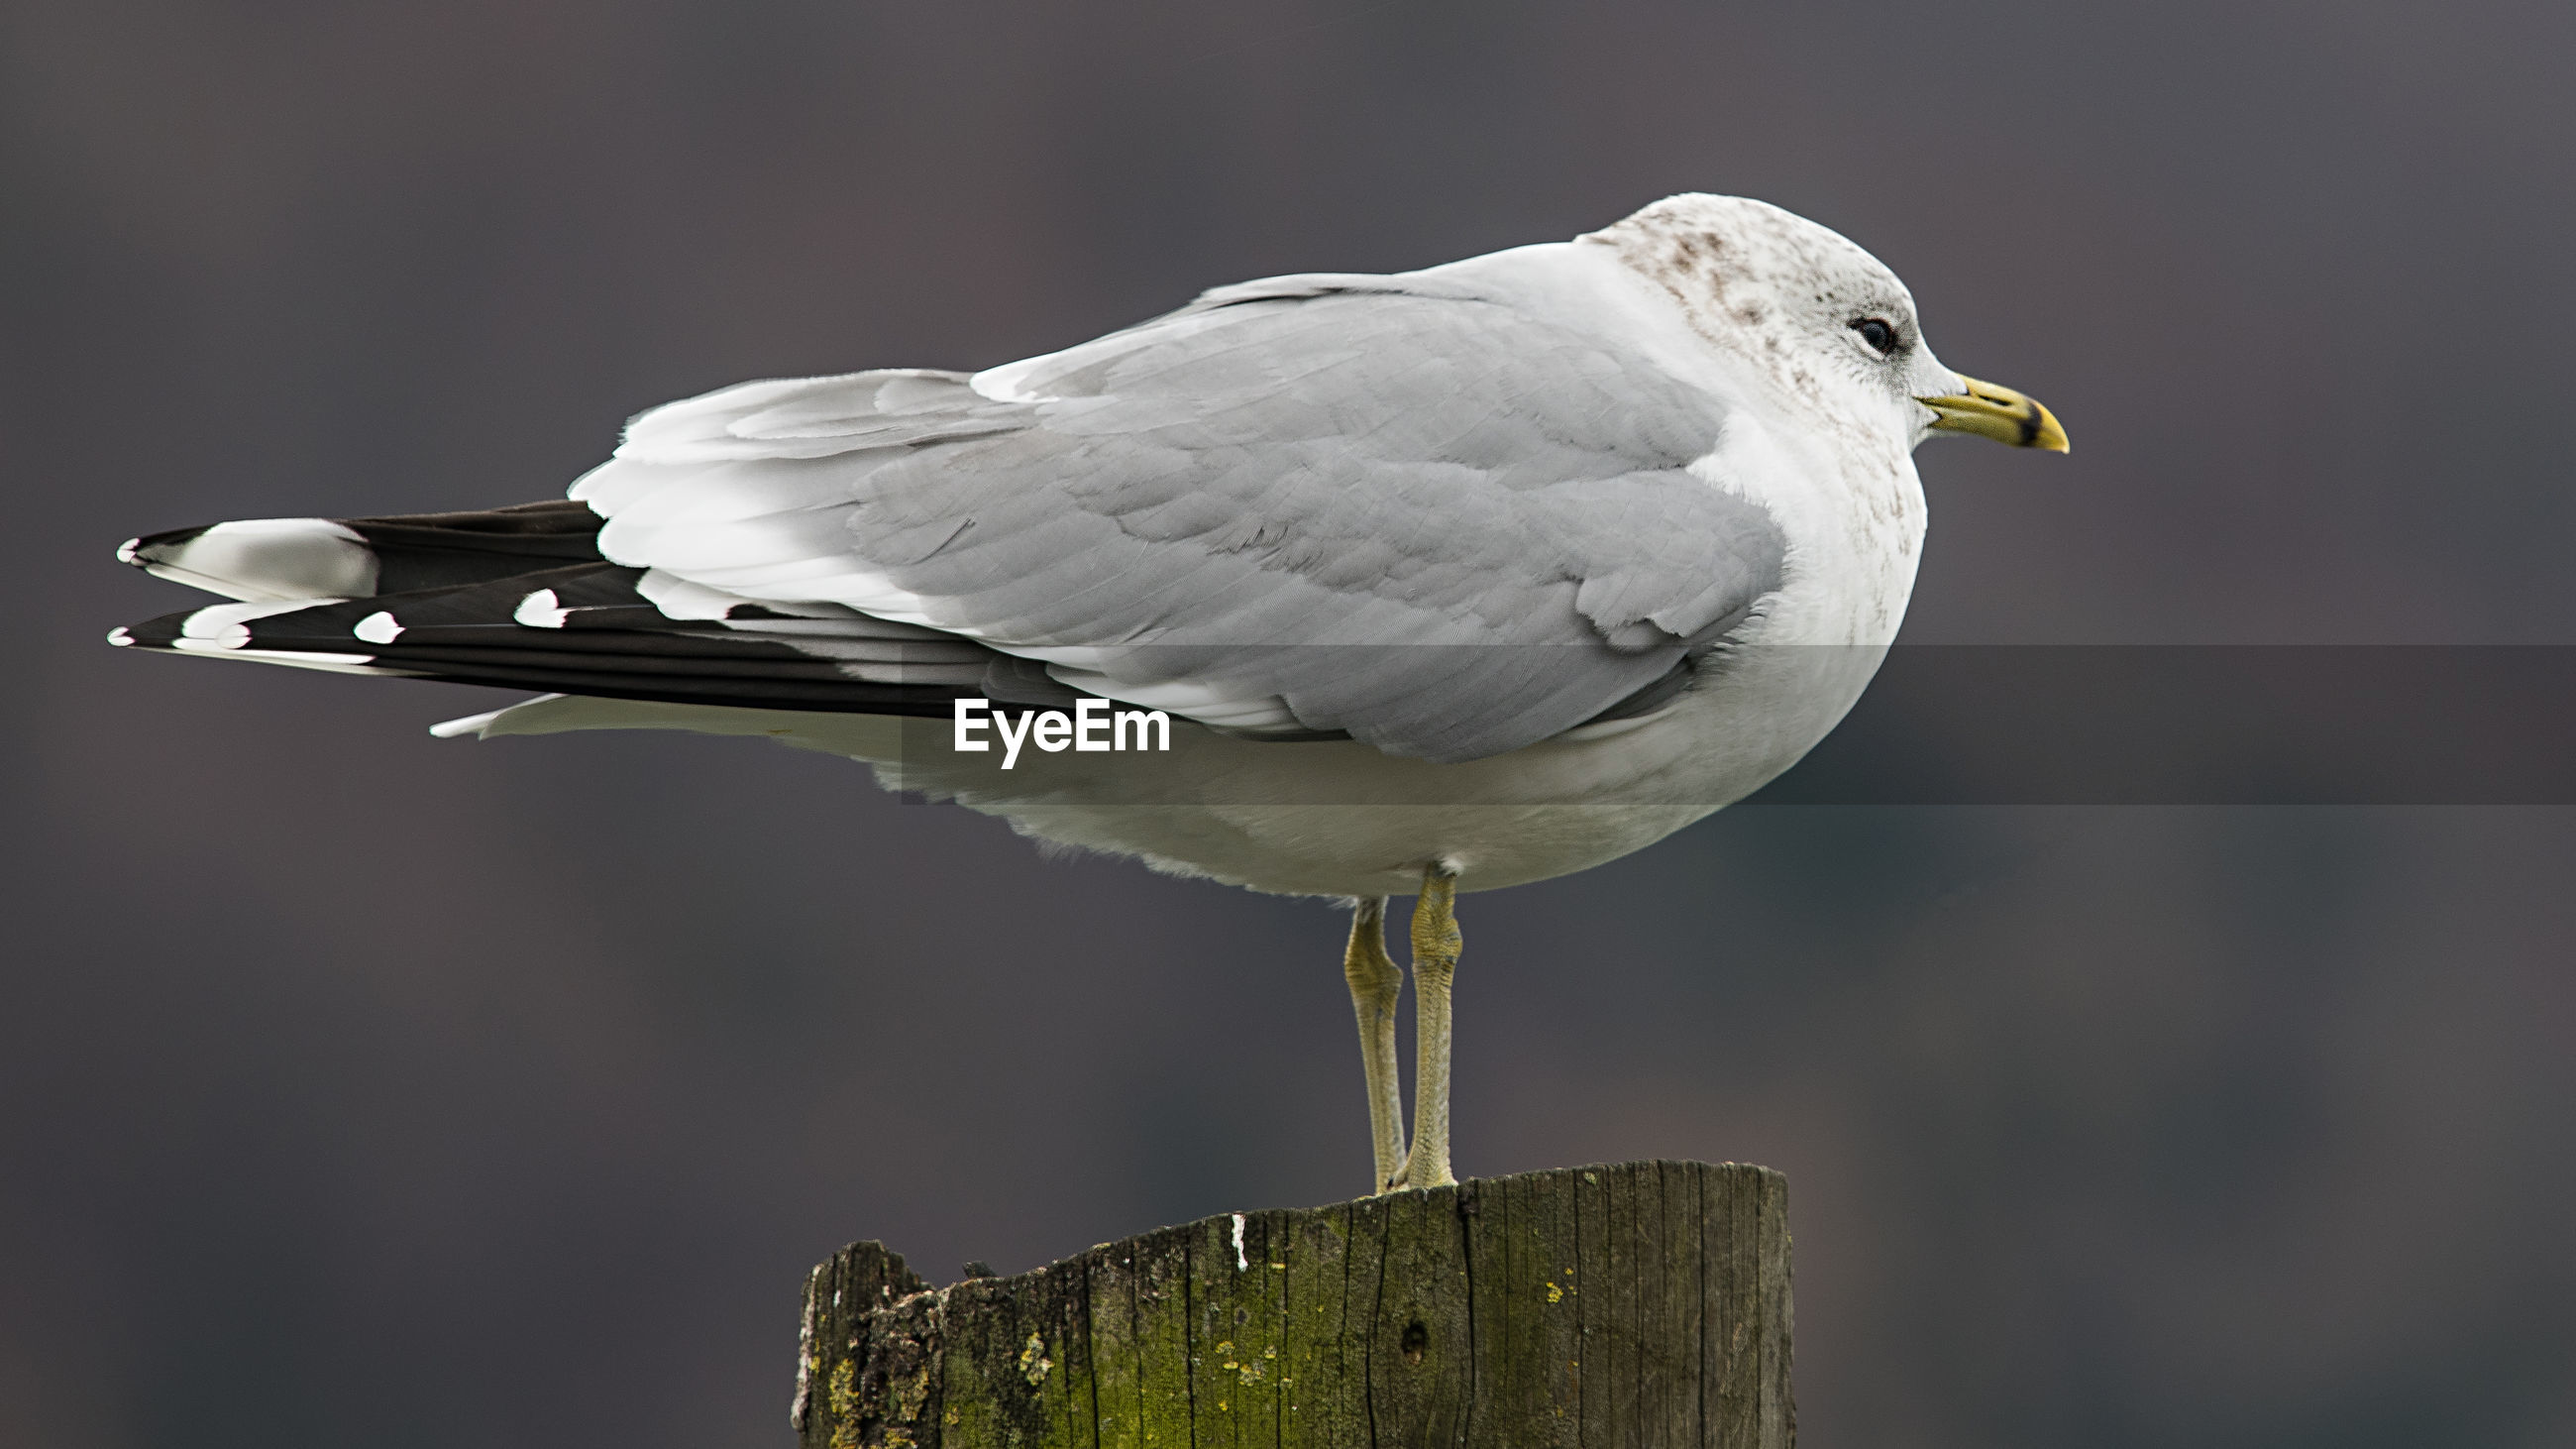 CLOSE-UP OF SEAGULL ON WOODEN POST